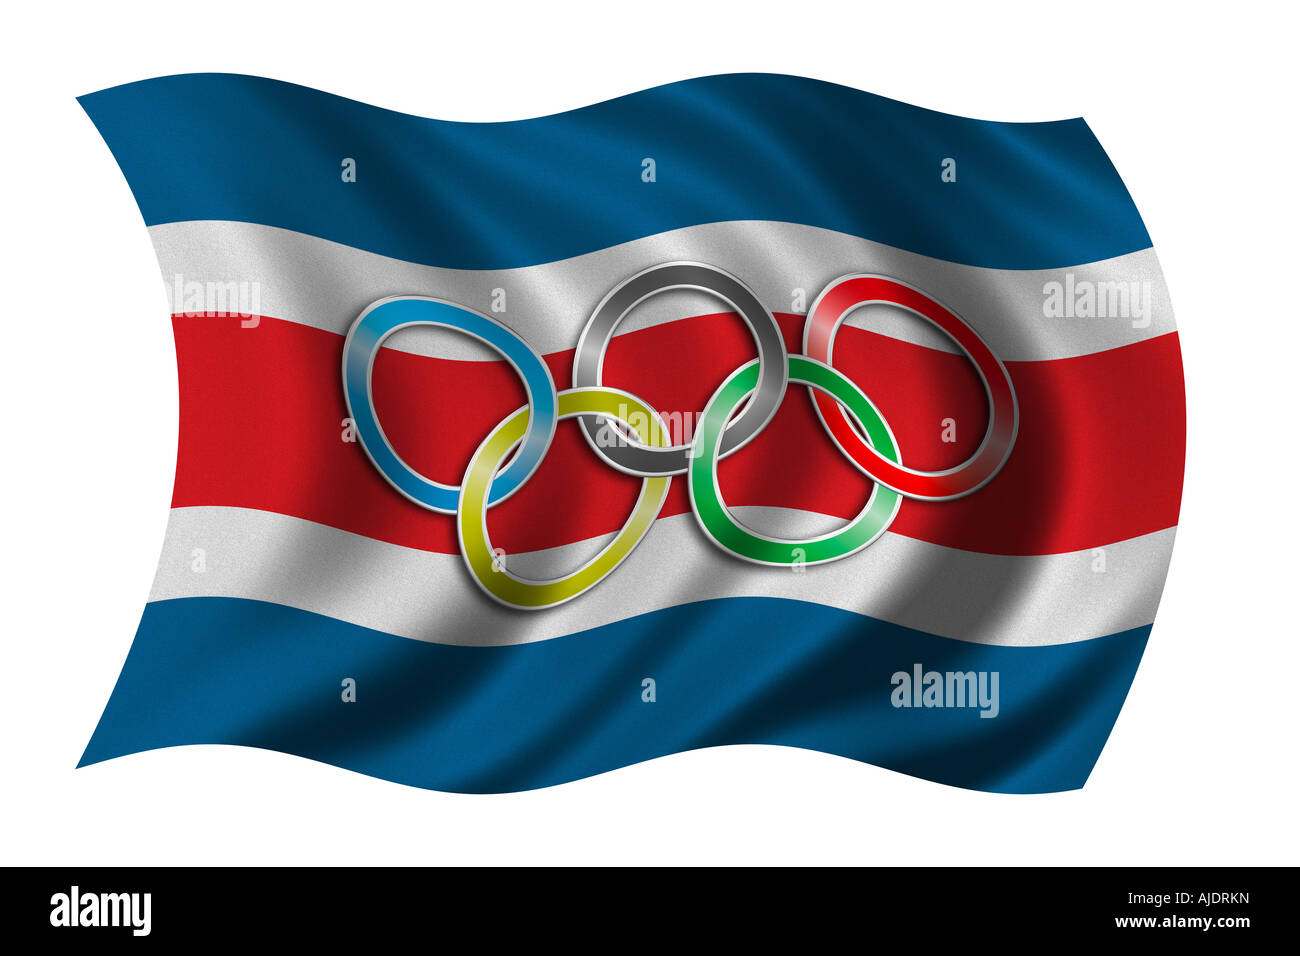 Flag of costa rica with olympic symbol stock photo 14706392 alamy flag of costa rica with olympic symbol biocorpaavc Gallery